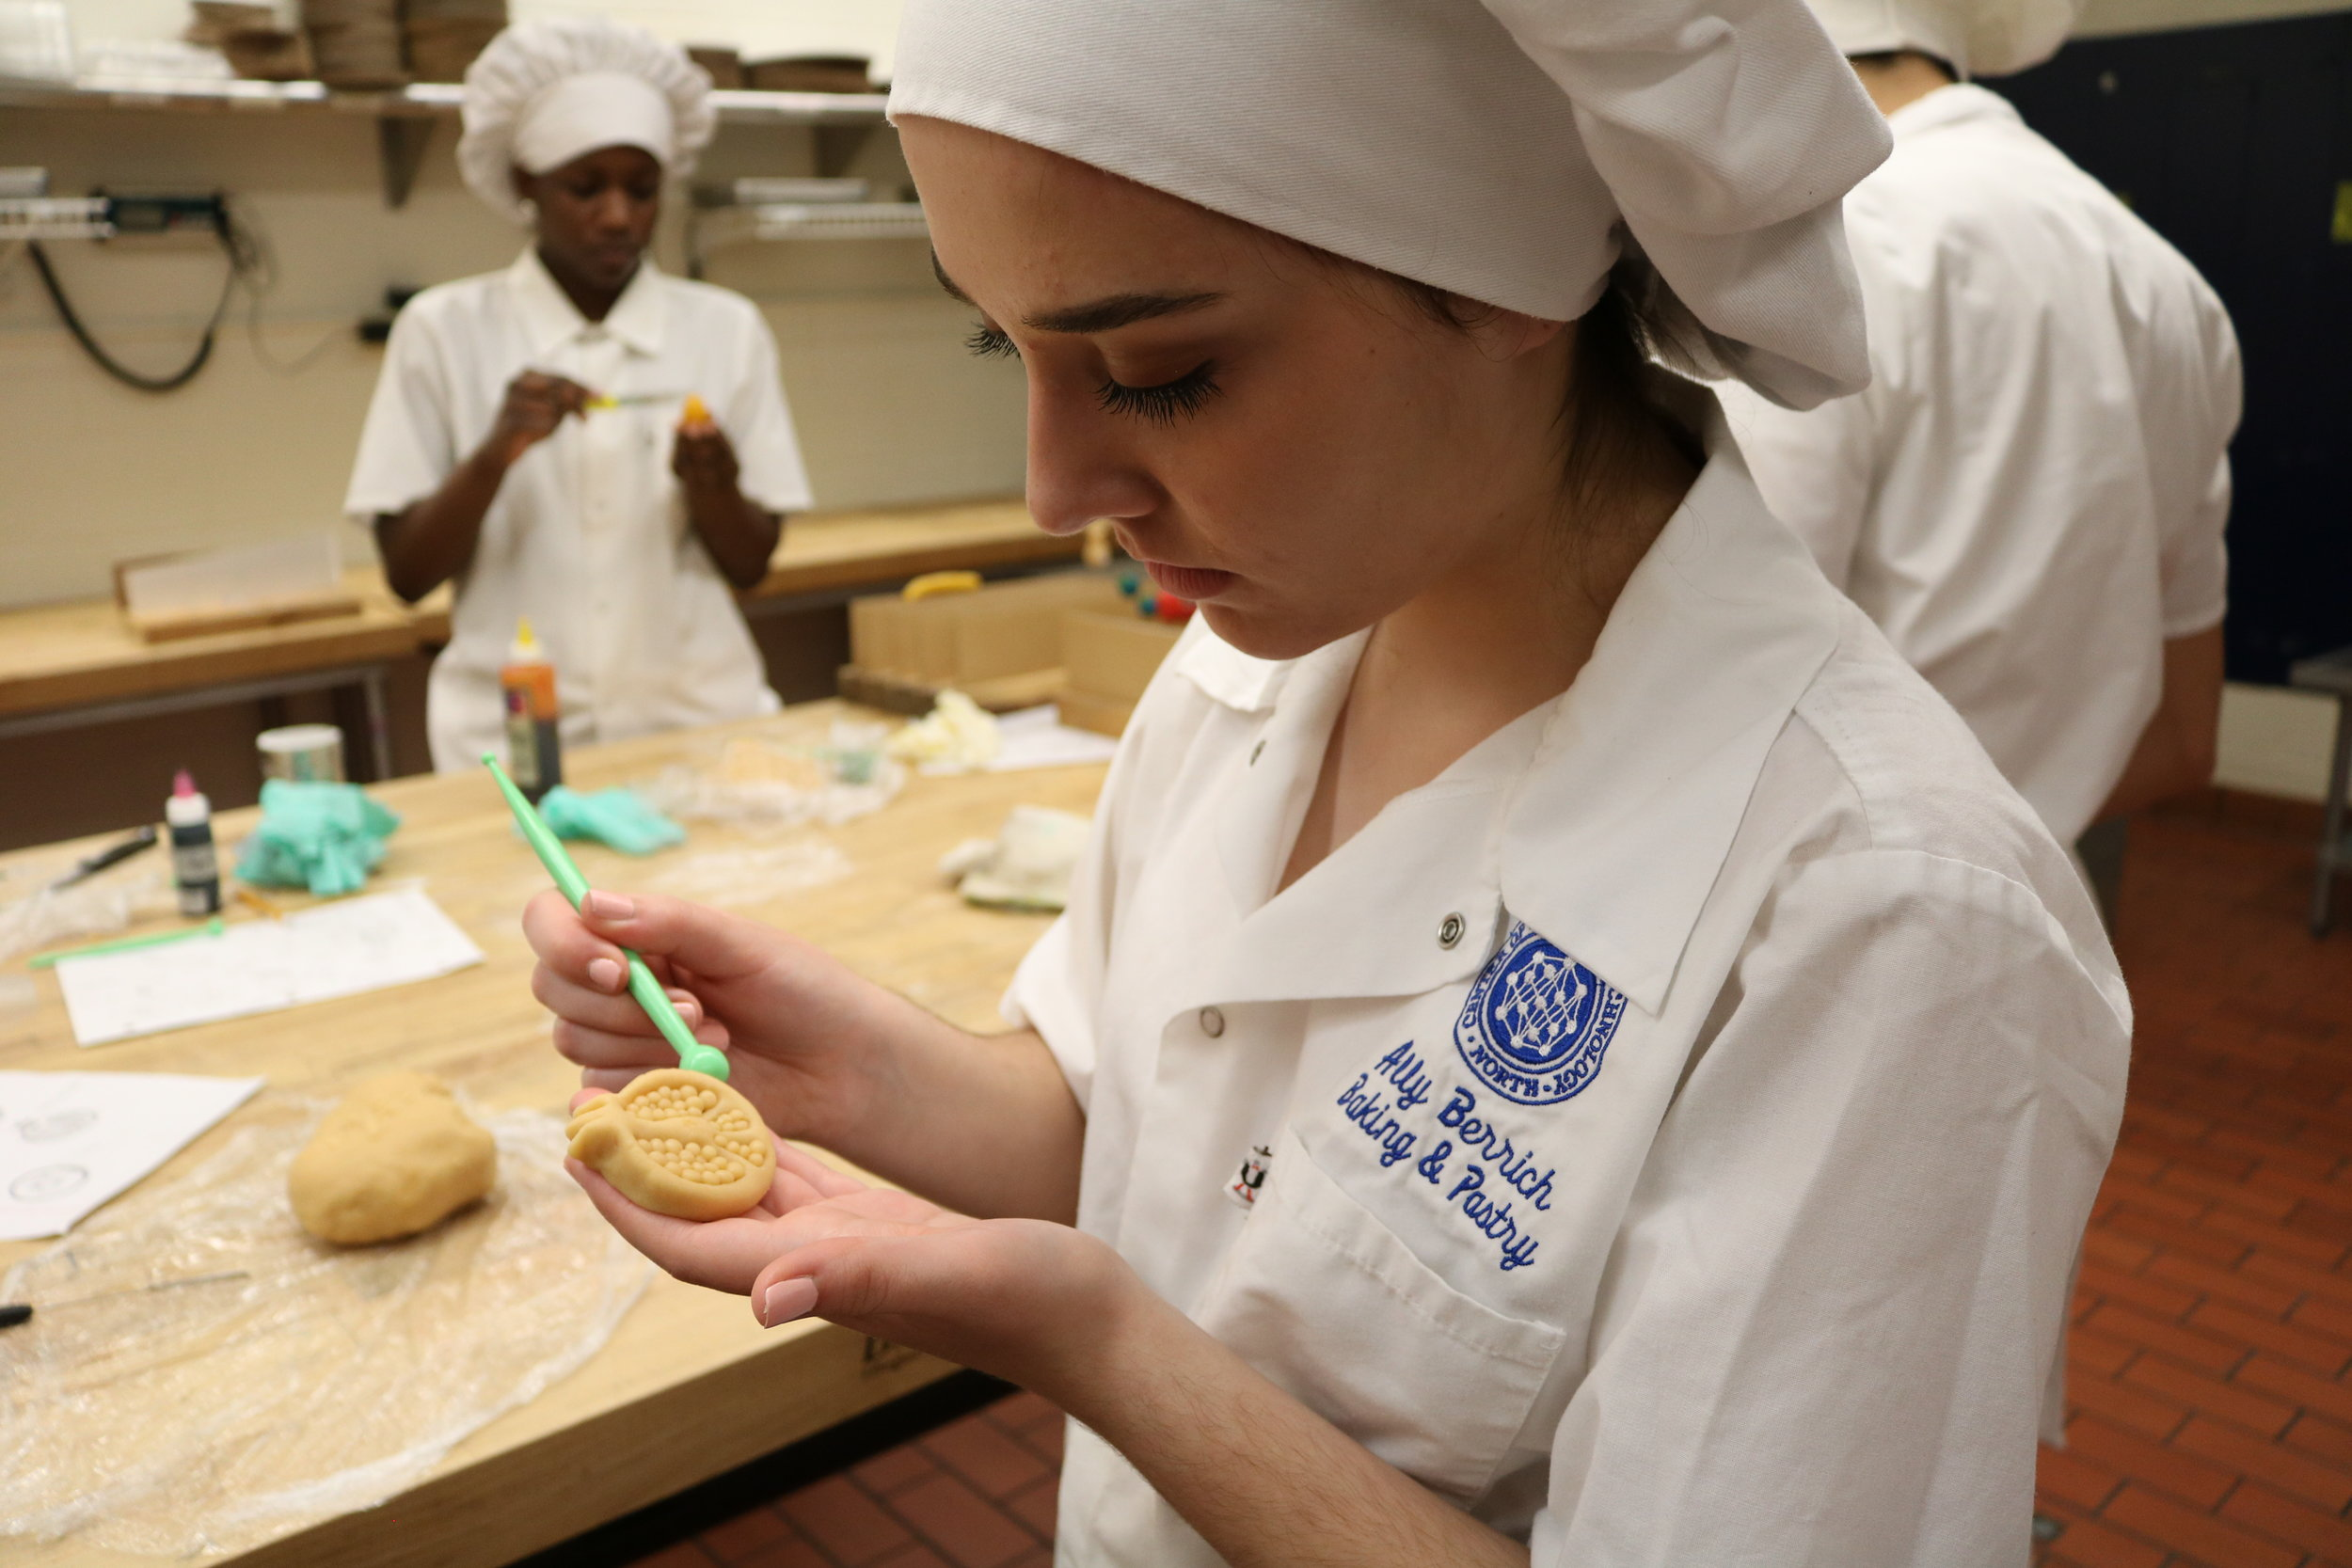 Ally Berrich, 17, forms a pomegranate out of marzipan in her baking and pastry course at the Center of Applied Technology North in Severn, Md., on May 5, 2016.